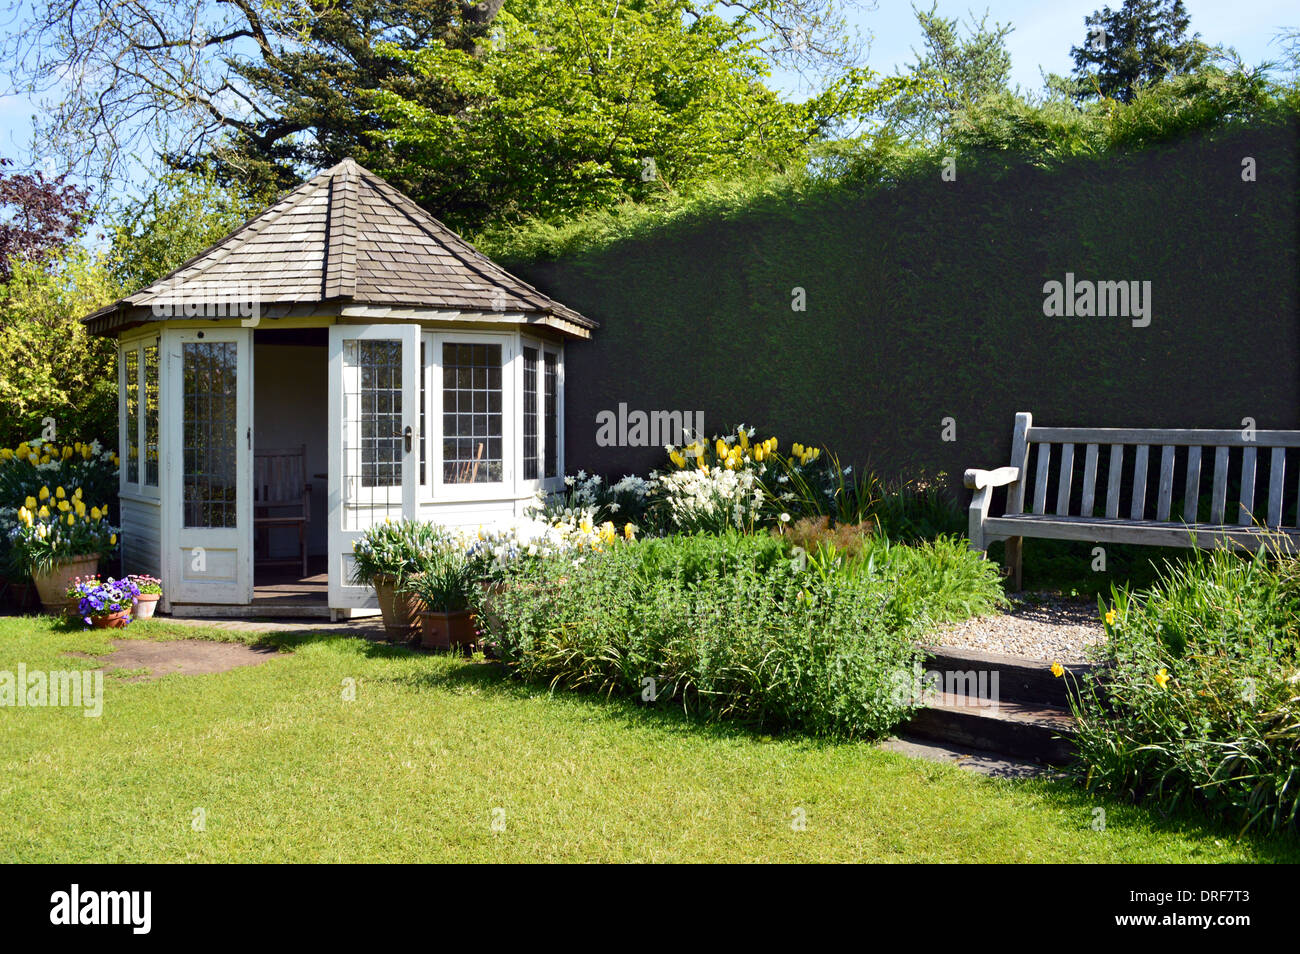 Summerhouse & Bench in a Conventional Garden on Display at the RHS Garden Harlow Carr, Harrogate, Yorkshire. - Stock Image